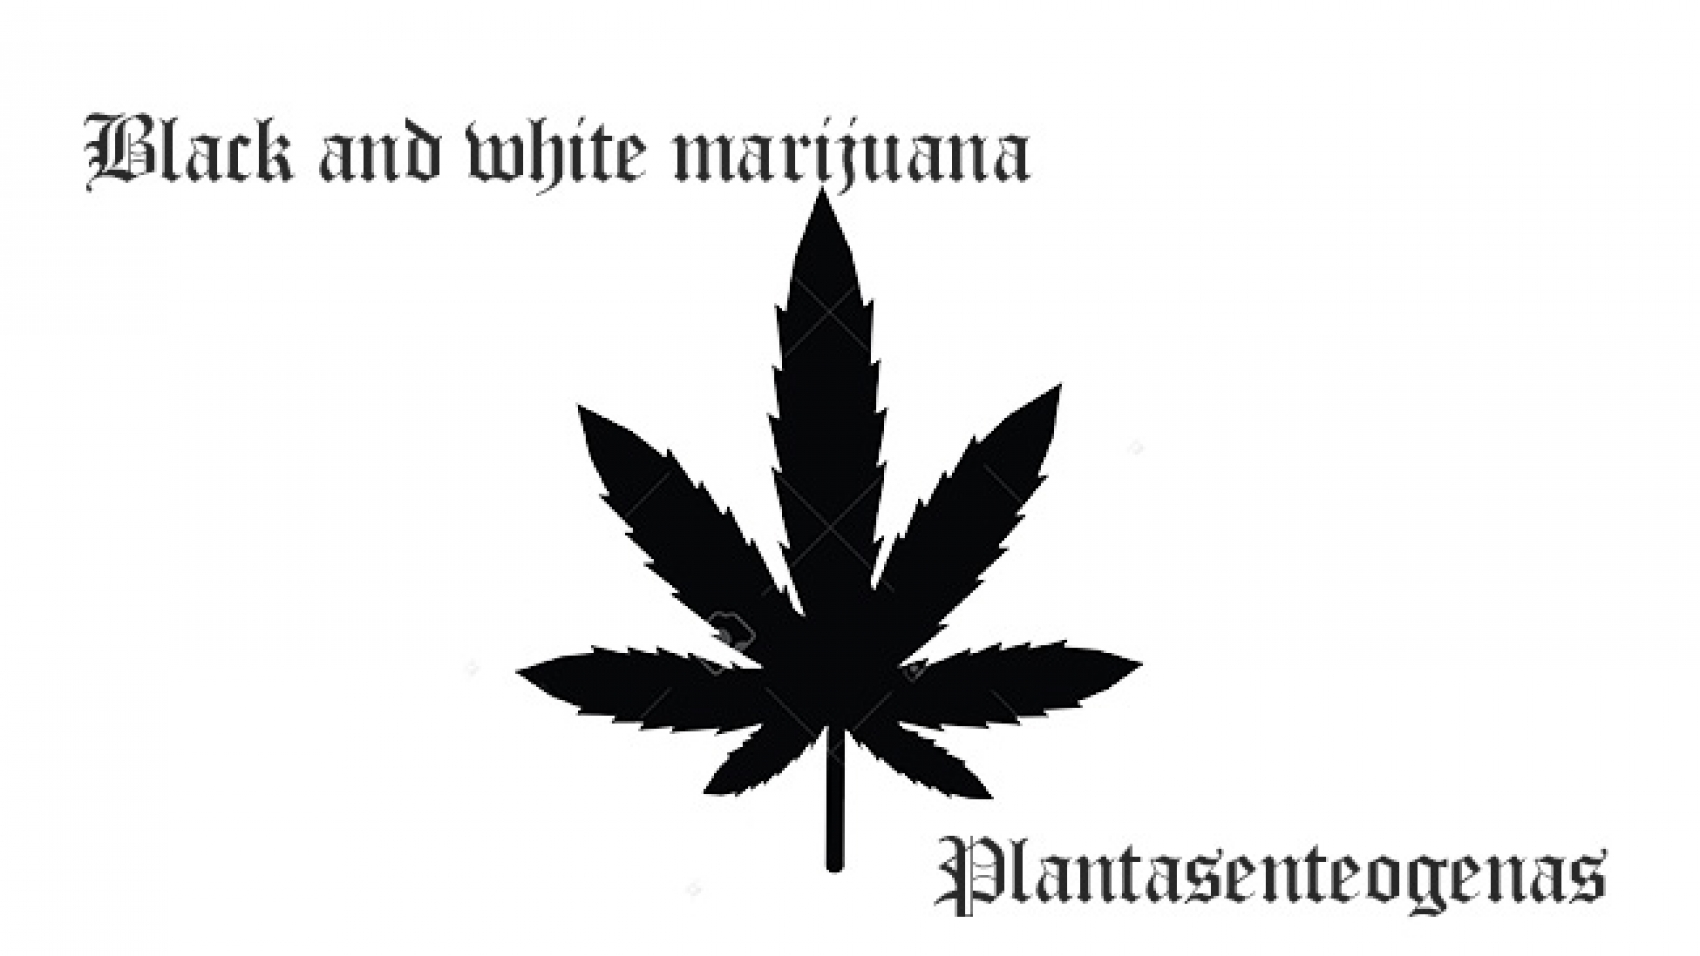 Black and white marijuana